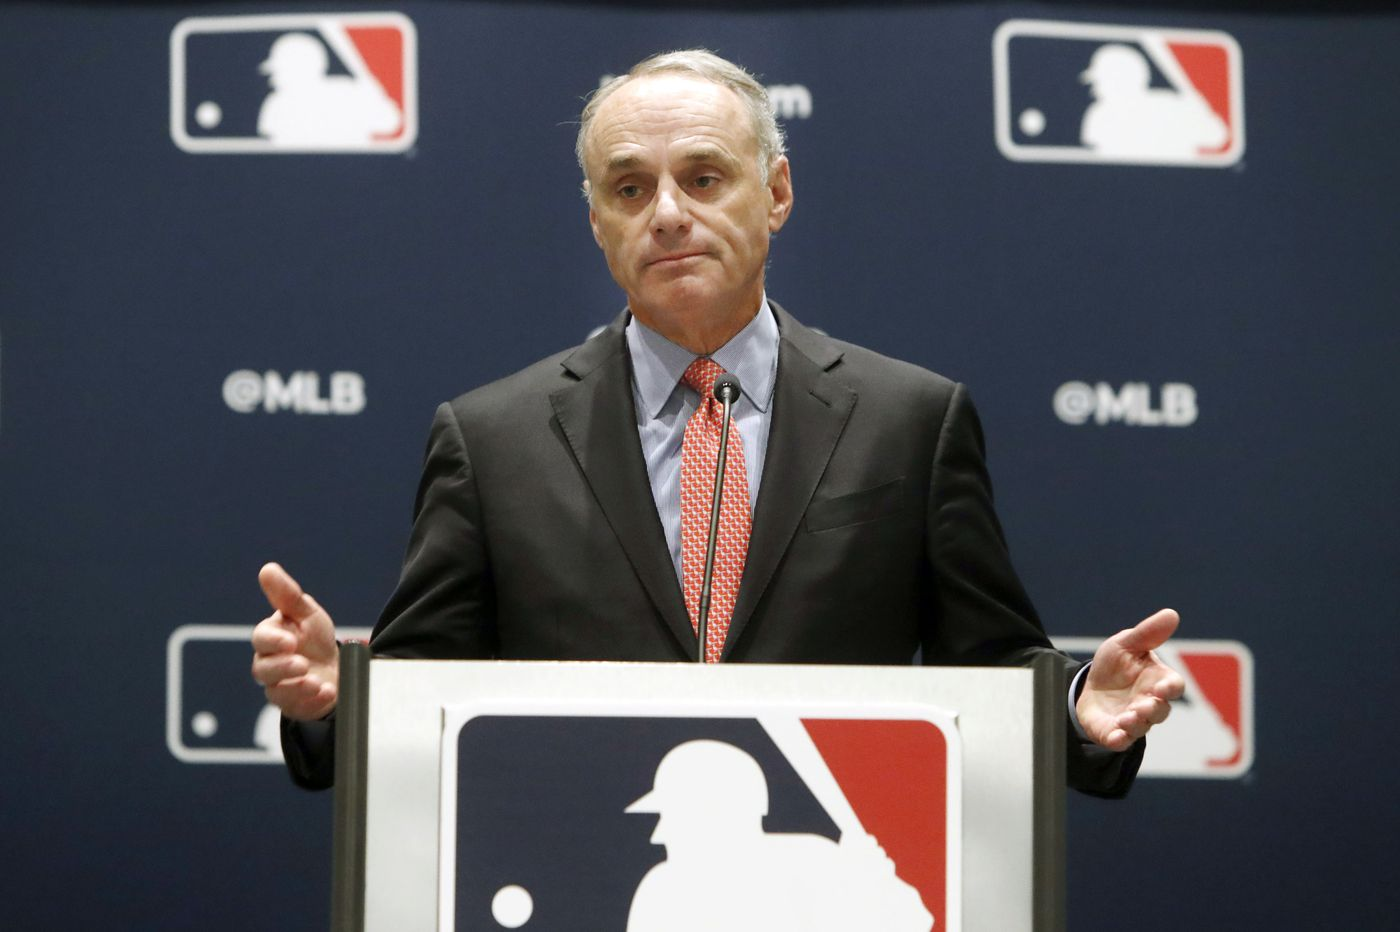 Rob Manfred must decide how to handle MLB's compromised competitive integrity | Bob Brookover